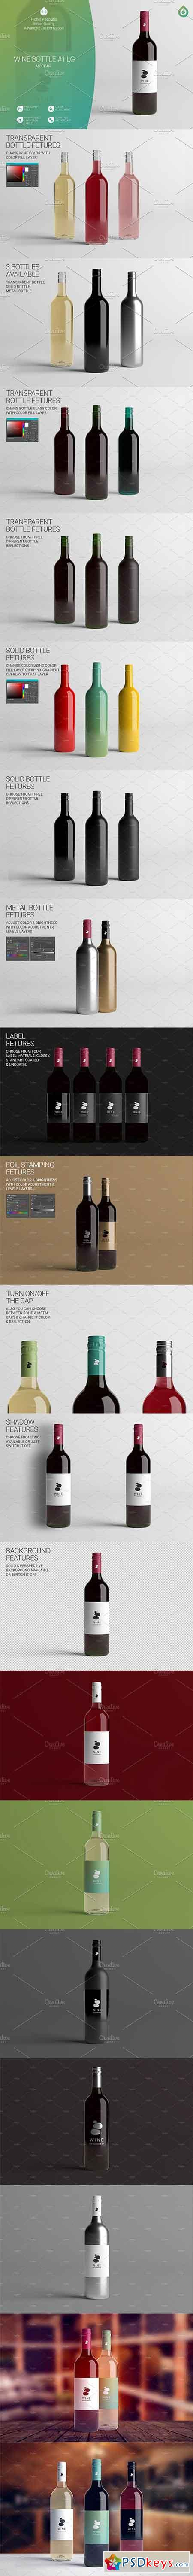 Wine Bottle LG Mock-Up 1 V2 2816412